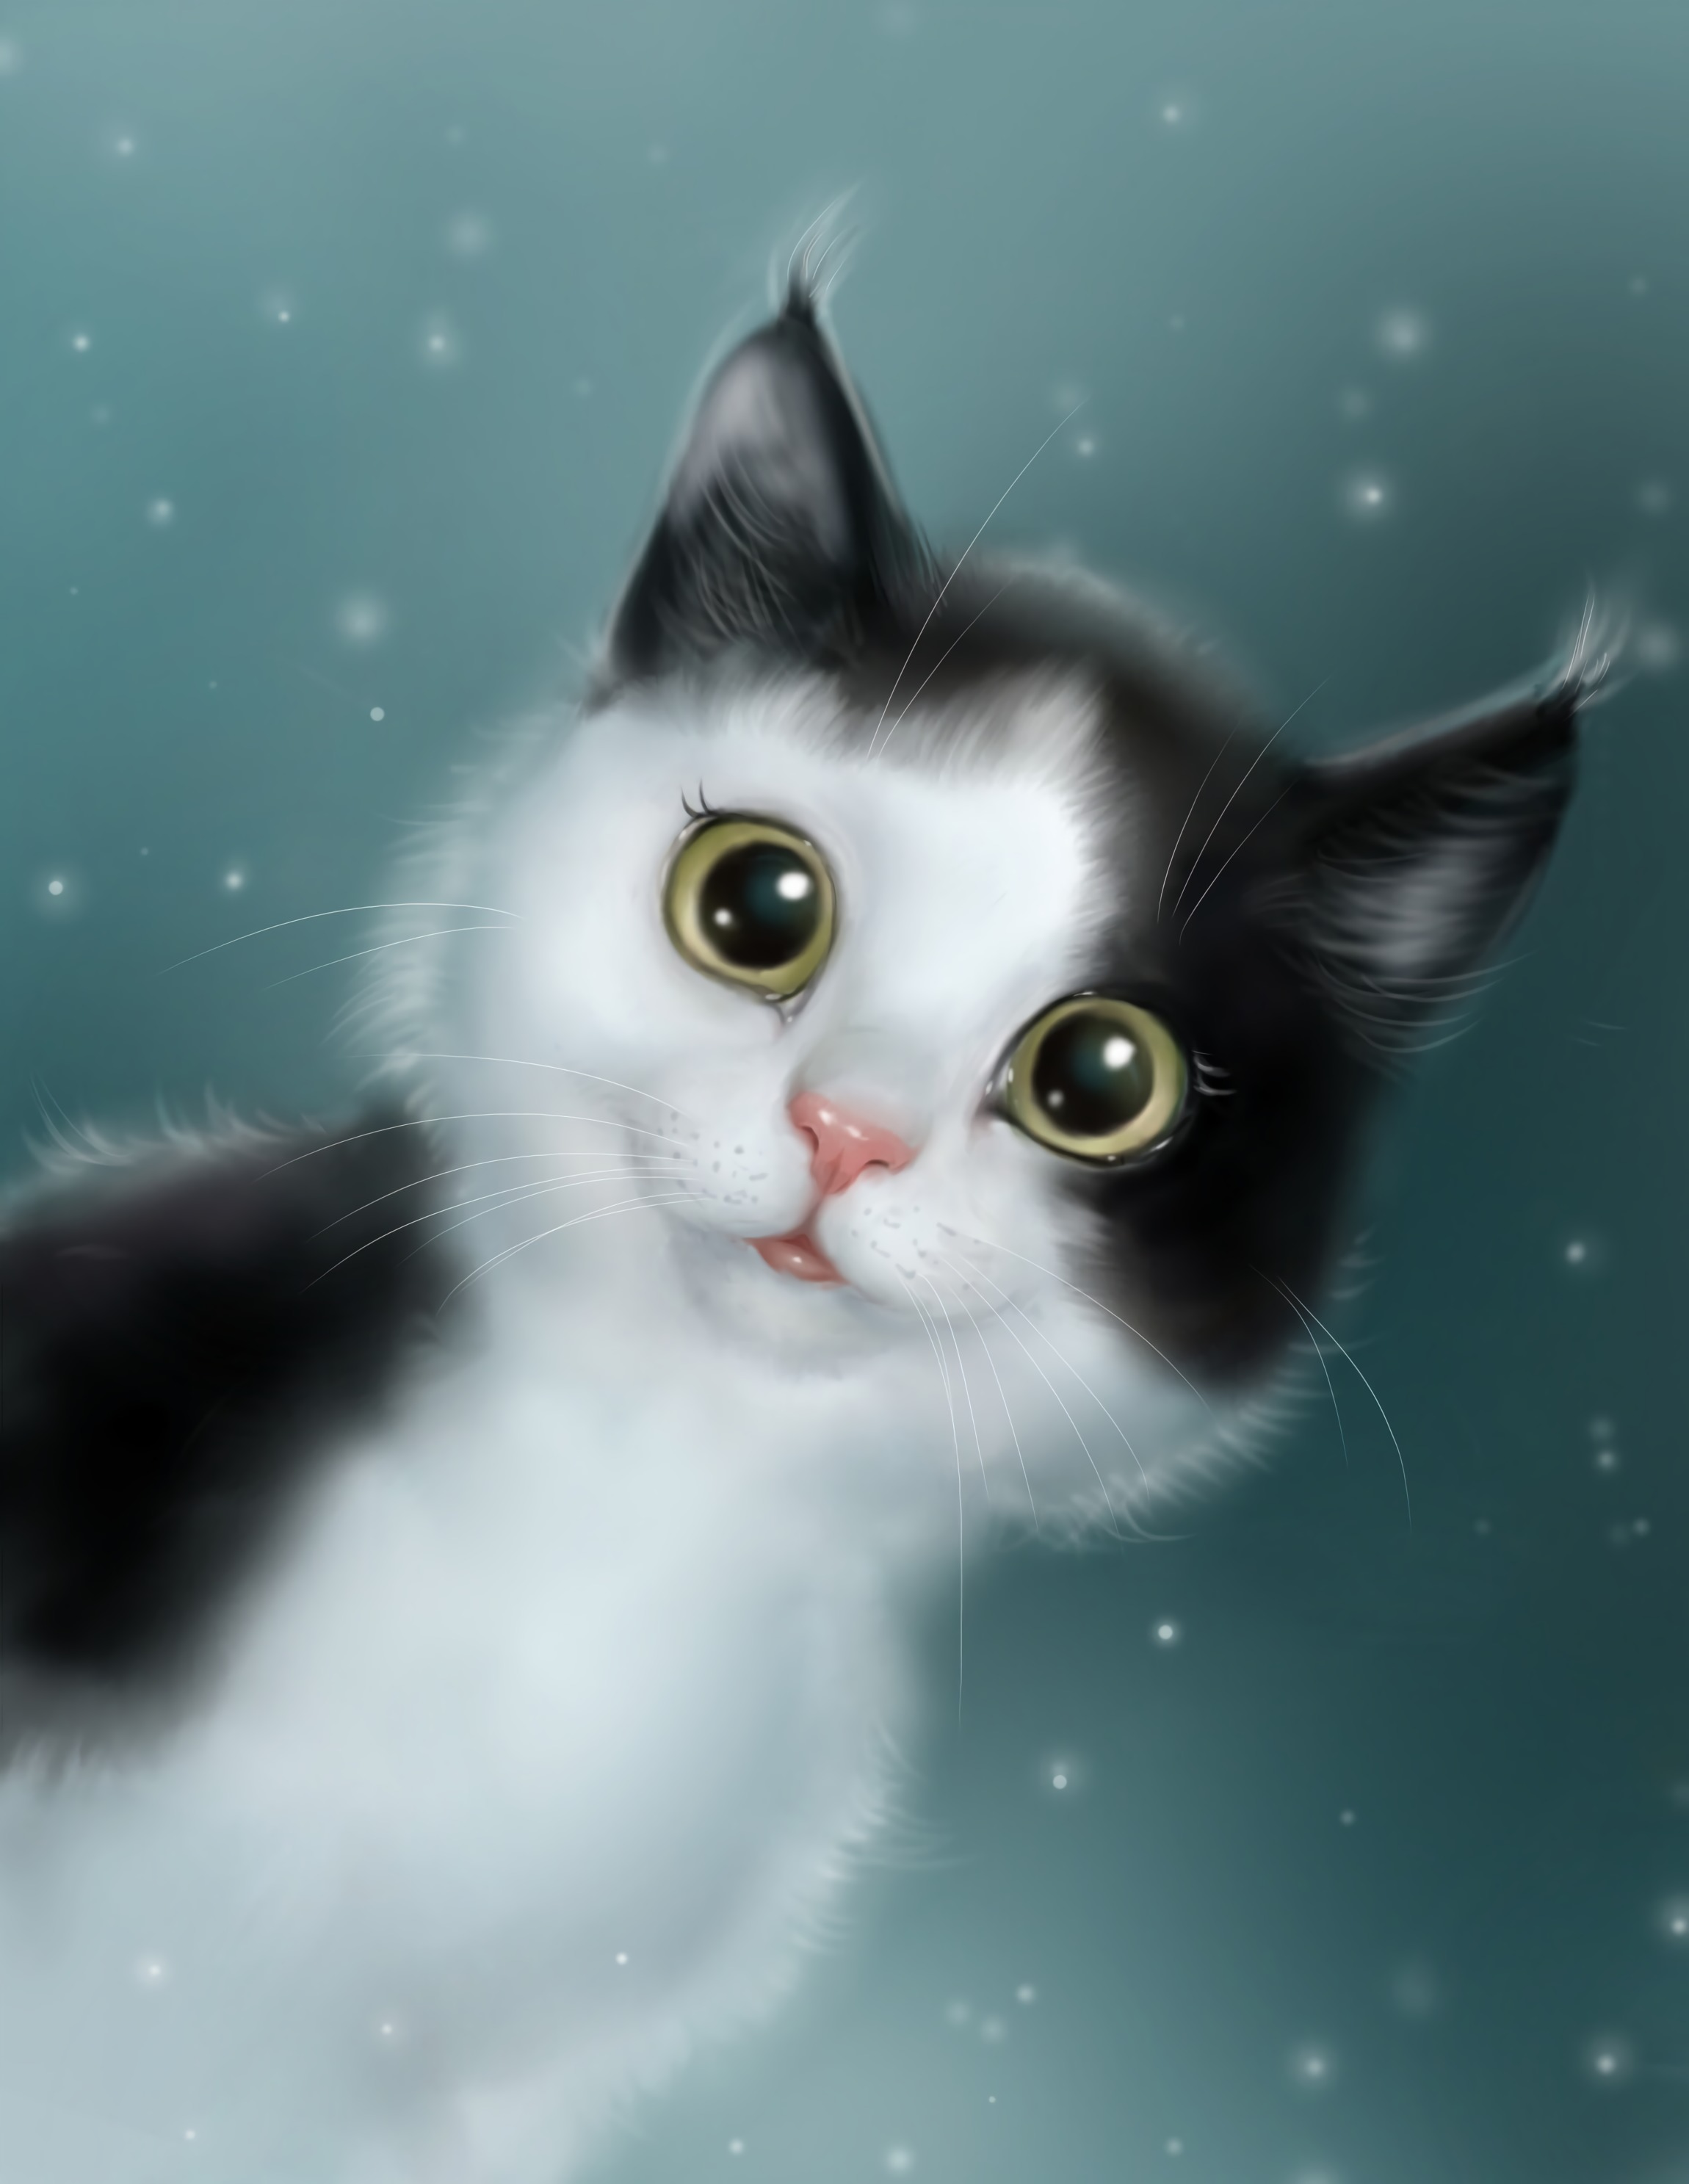 152483 download wallpaper Art, Cat, Pet, Nice, Sweetheart screensavers and pictures for free